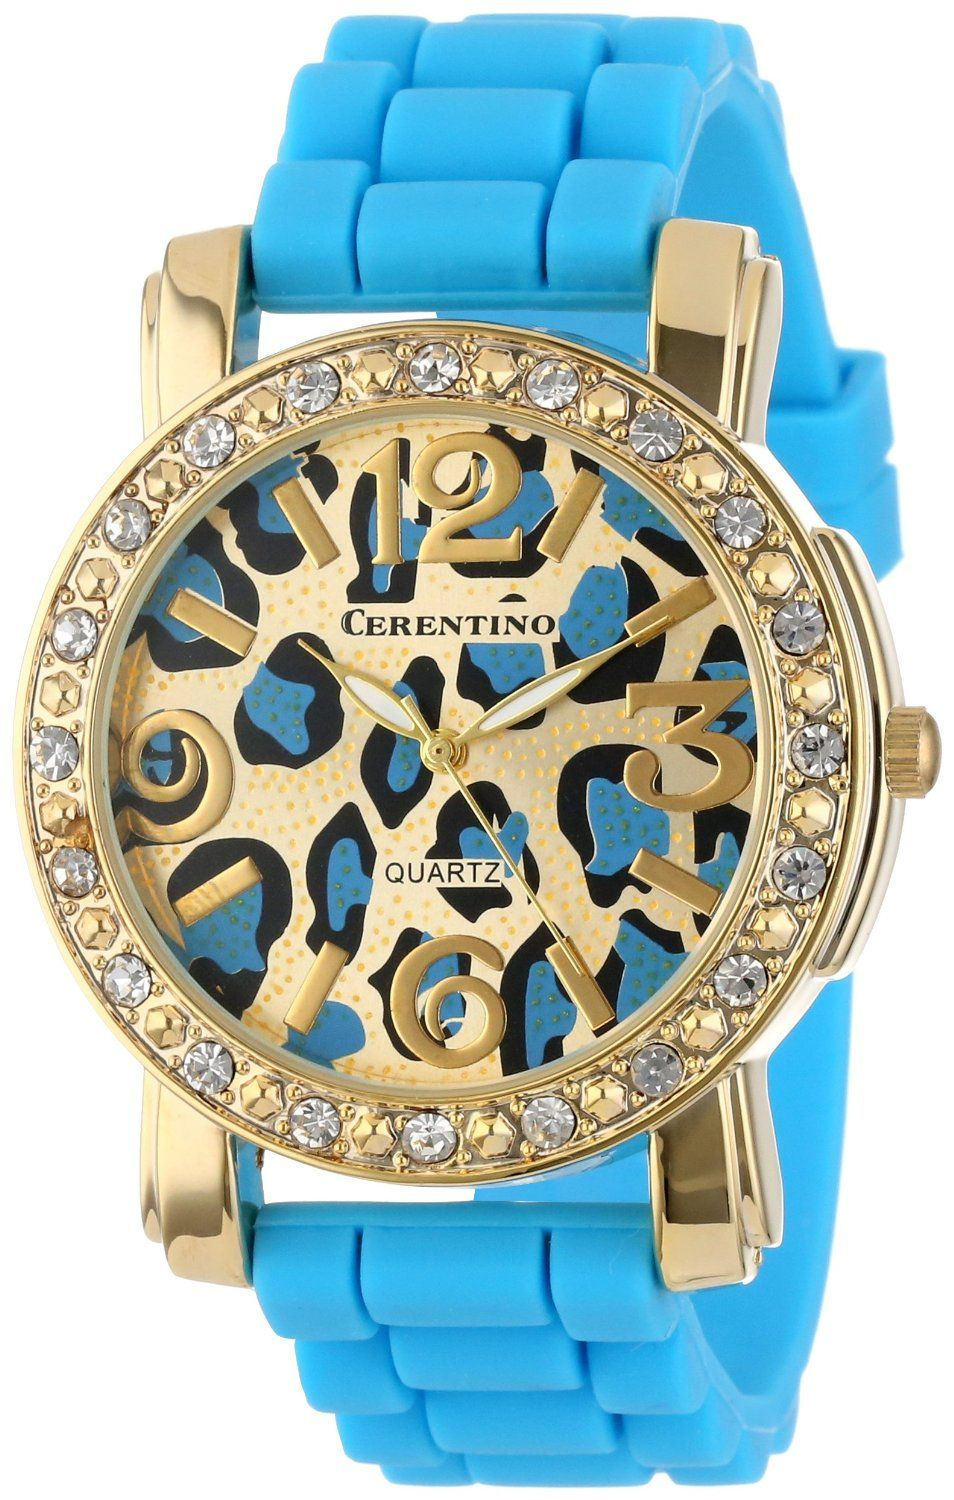 Turquoise Silicone Rubber Leopard Print Watch